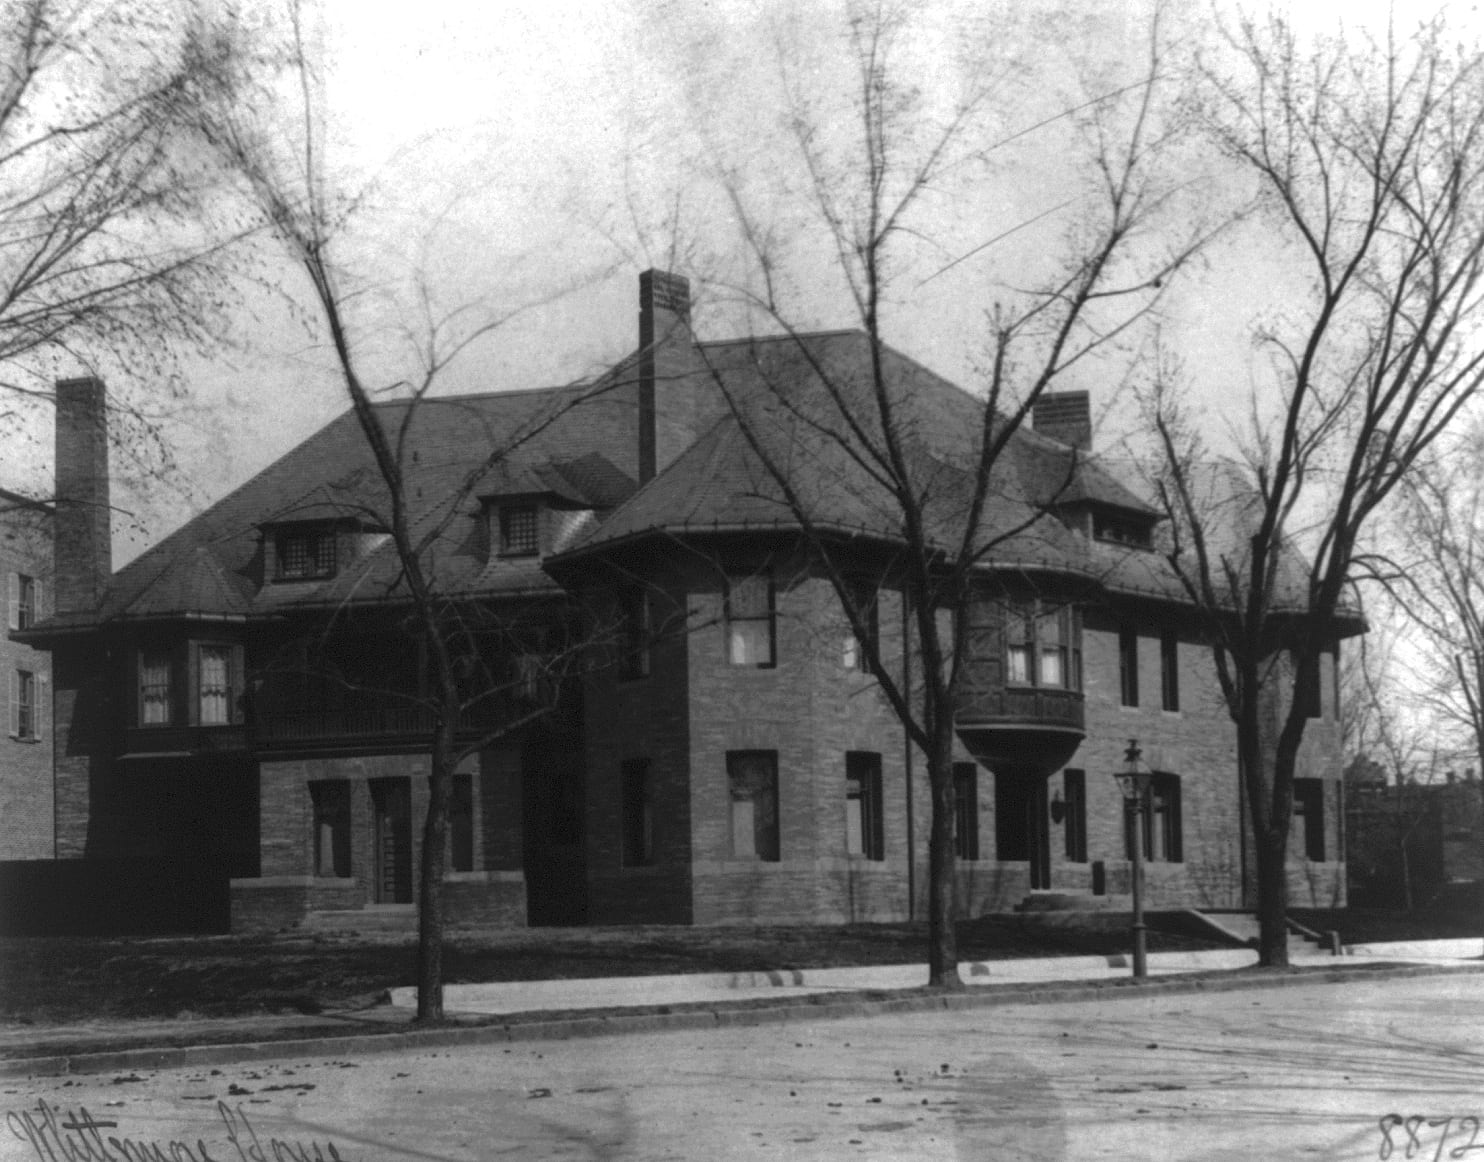 Whittemore House in 1900